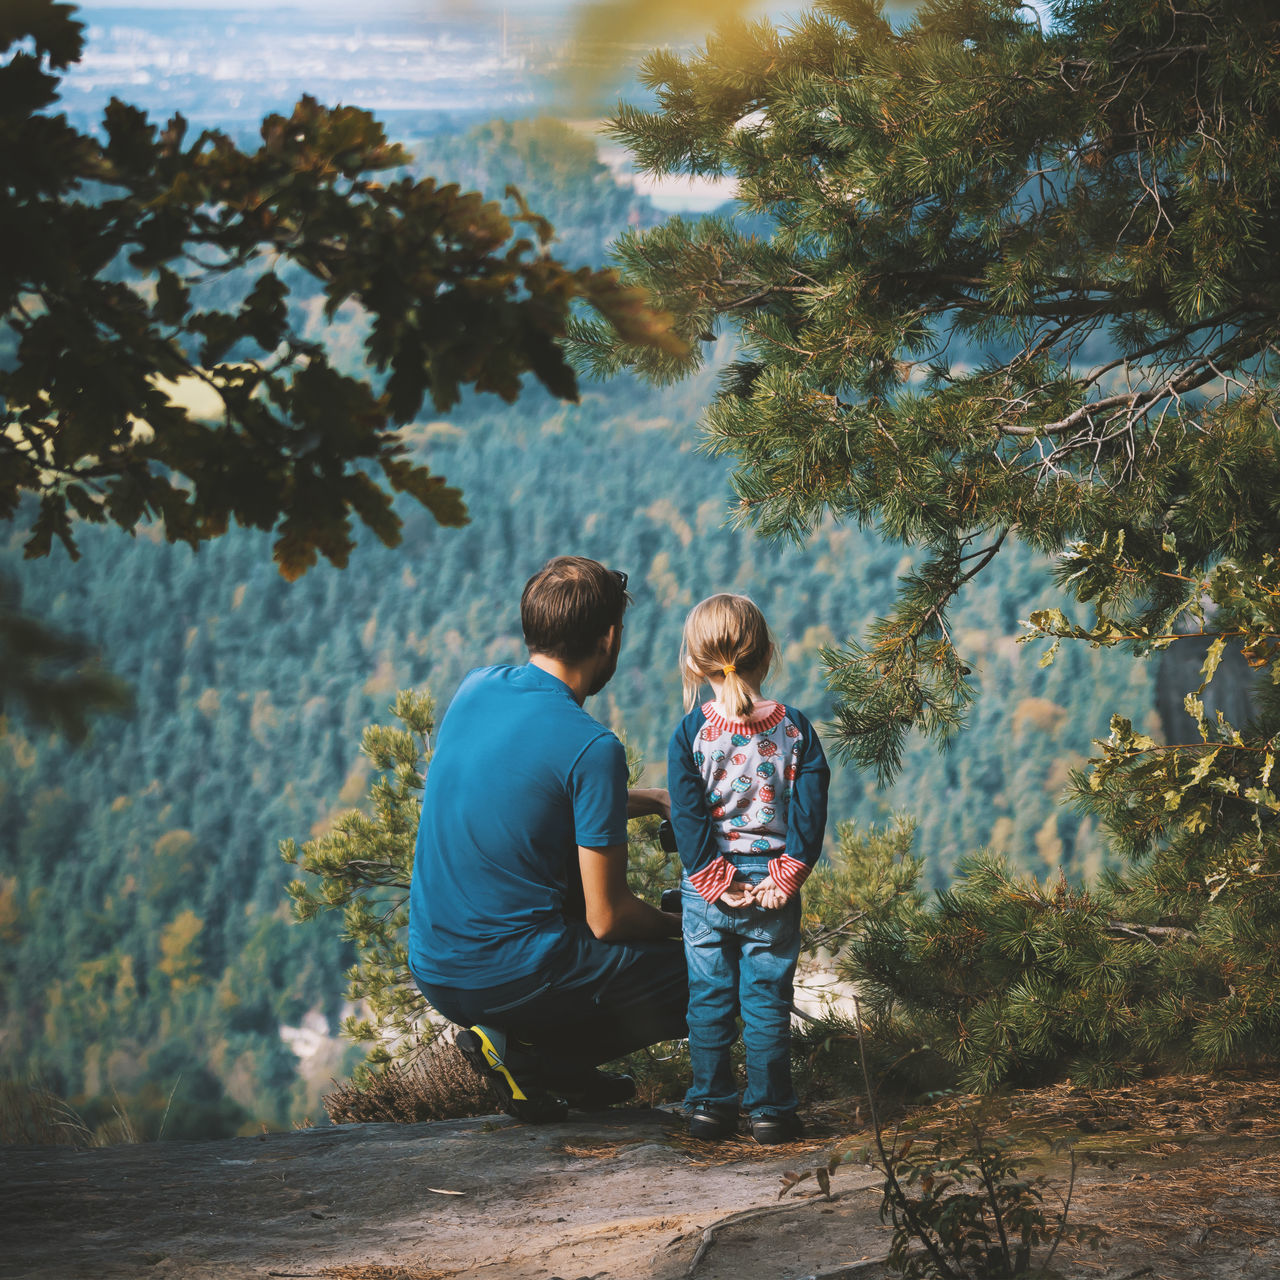 Beautiful stock photos of freundschaft, two people, child, tree, togetherness